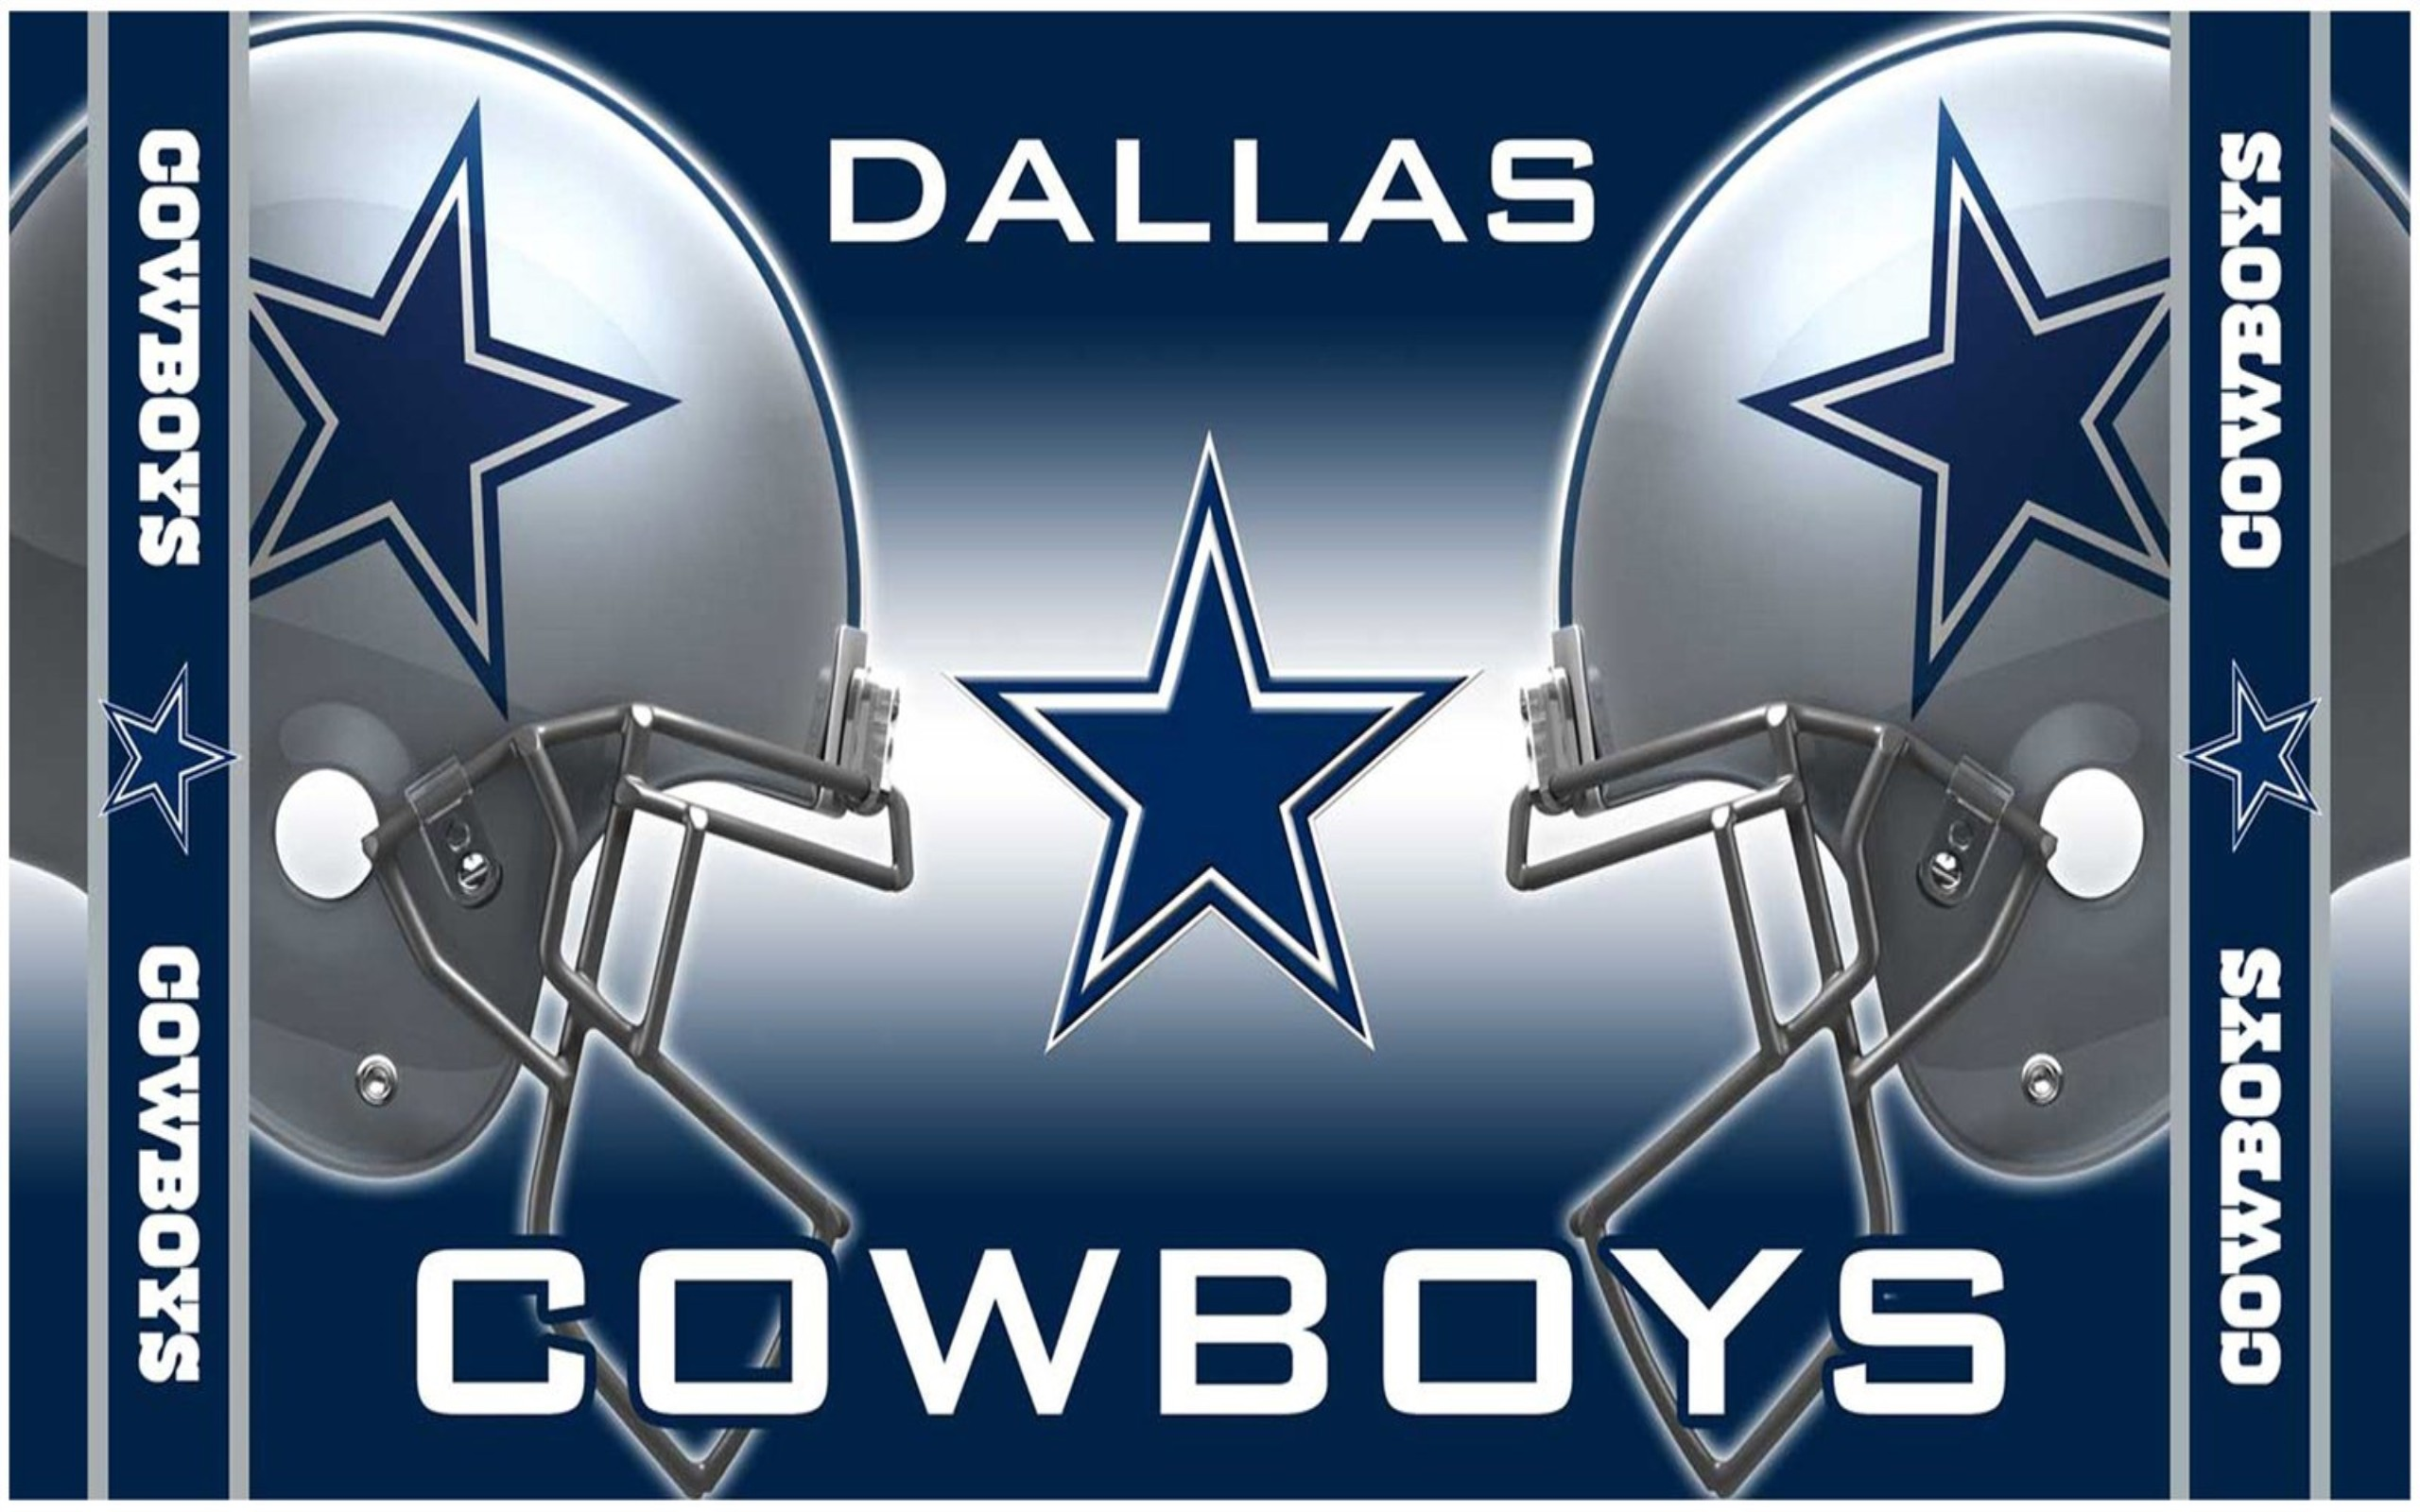 dallas cowboys 2016 schedule wallpaper wallpapersafari